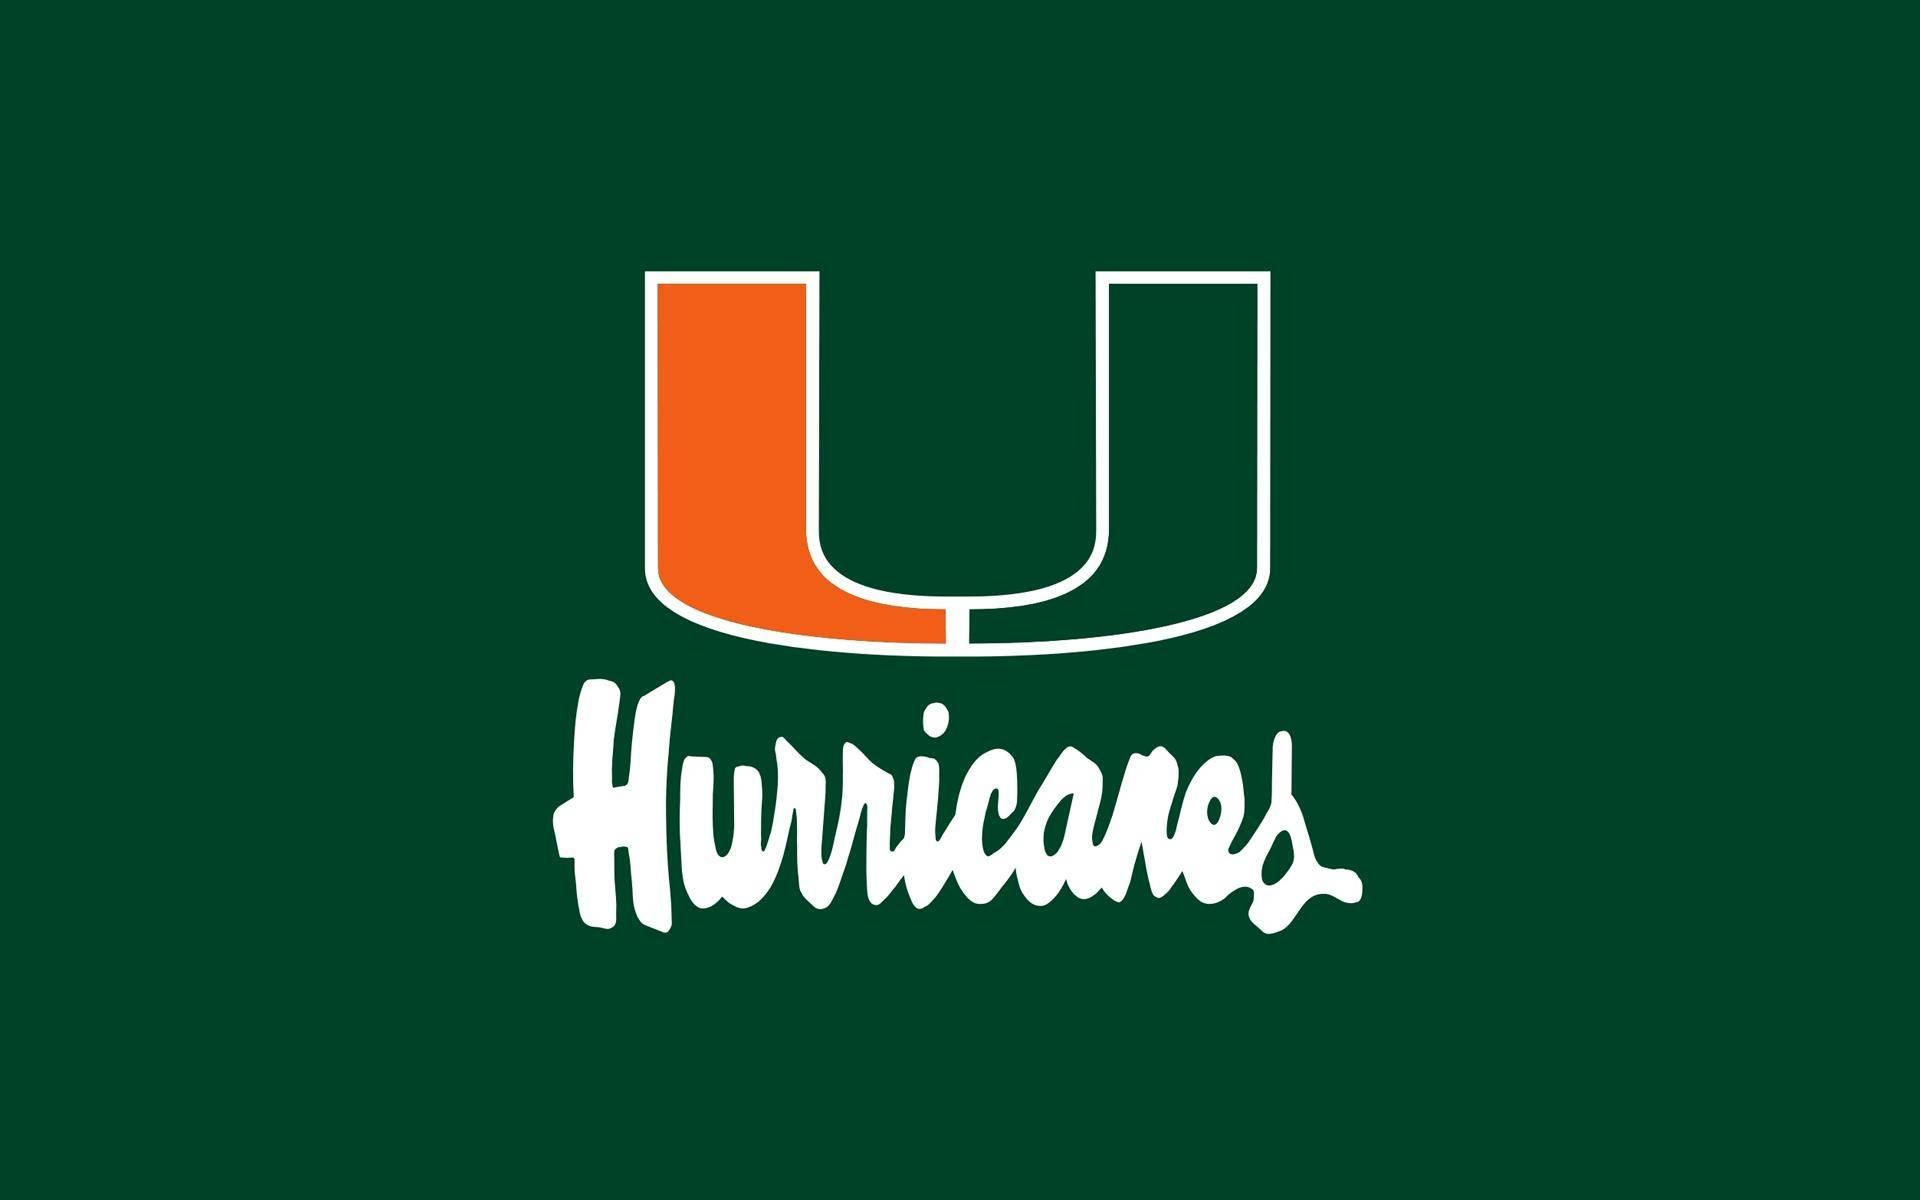 Miami Hurricanes Wallpaper For Iphone